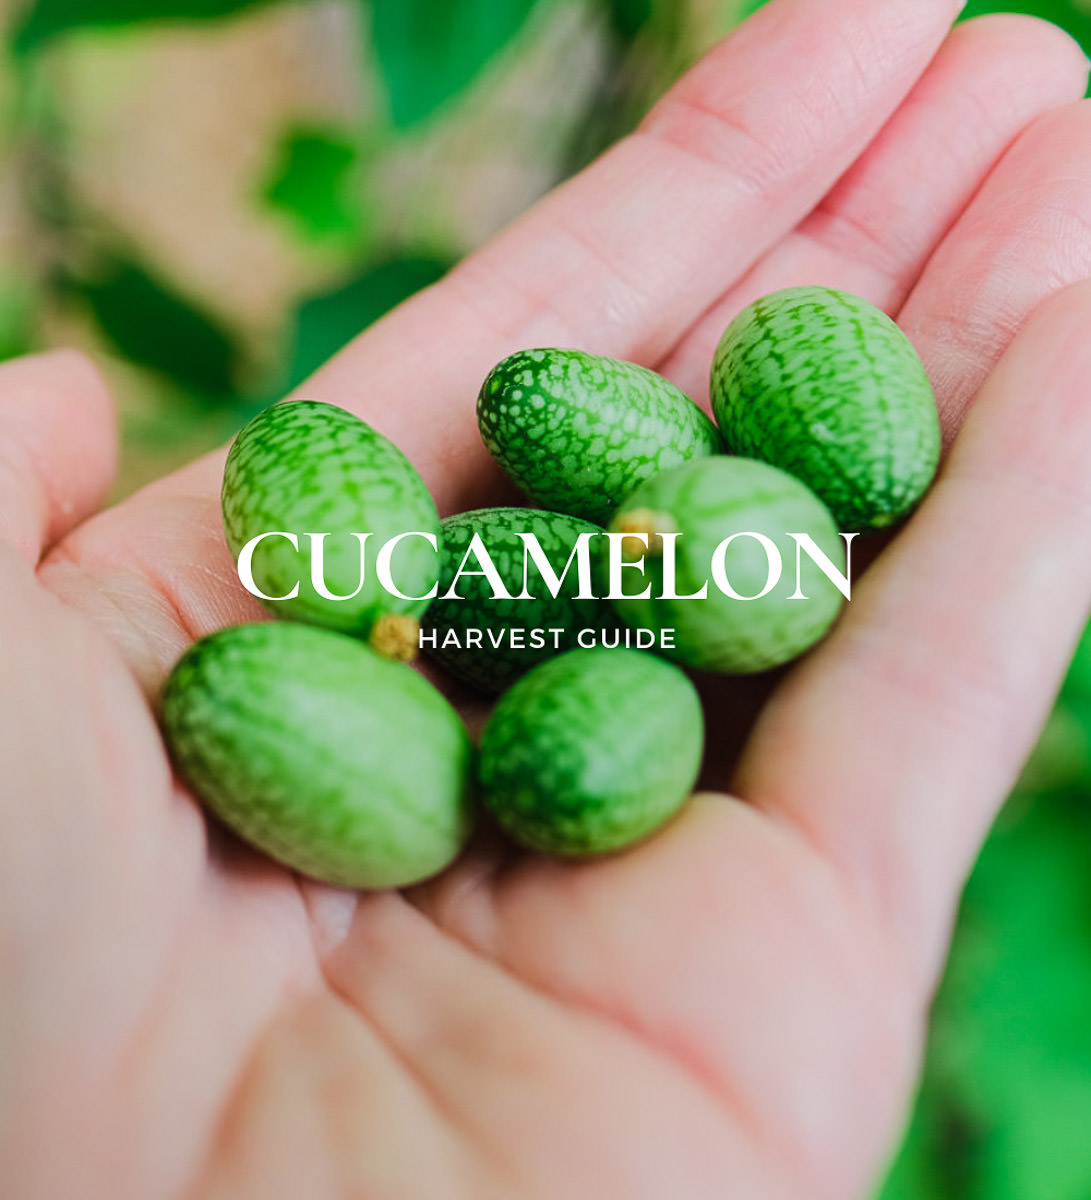 When to Pick Cucamelons